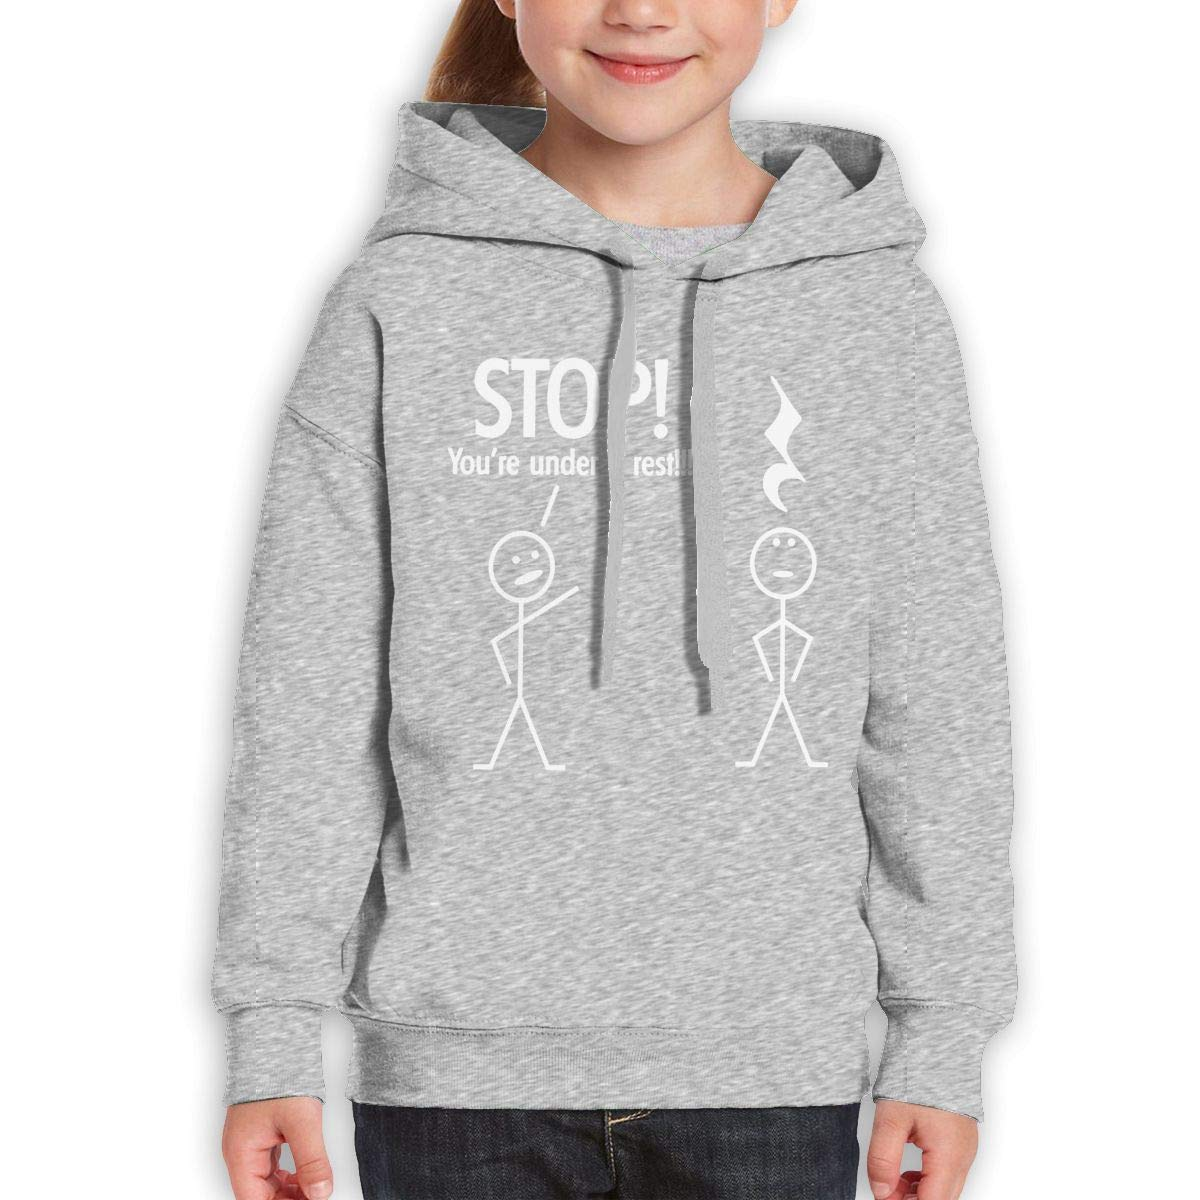 Boys Girls Stop Youre Under A Rest Teen Youth Hoody Black